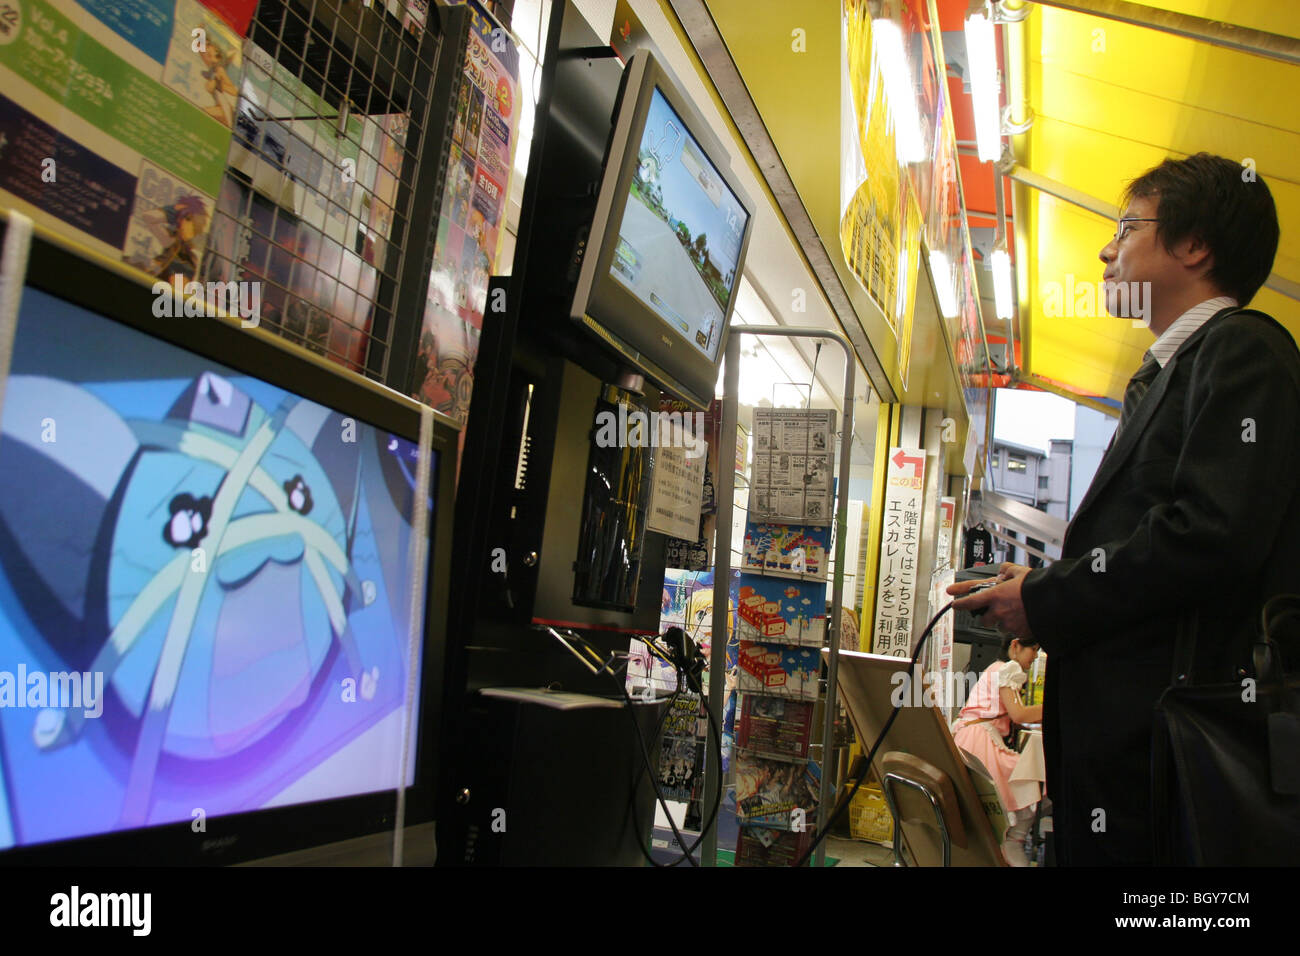 Customers try out the new PlayStation3 gaming console outside an electronics store in Akihabara 'Electric town', - Stock Image